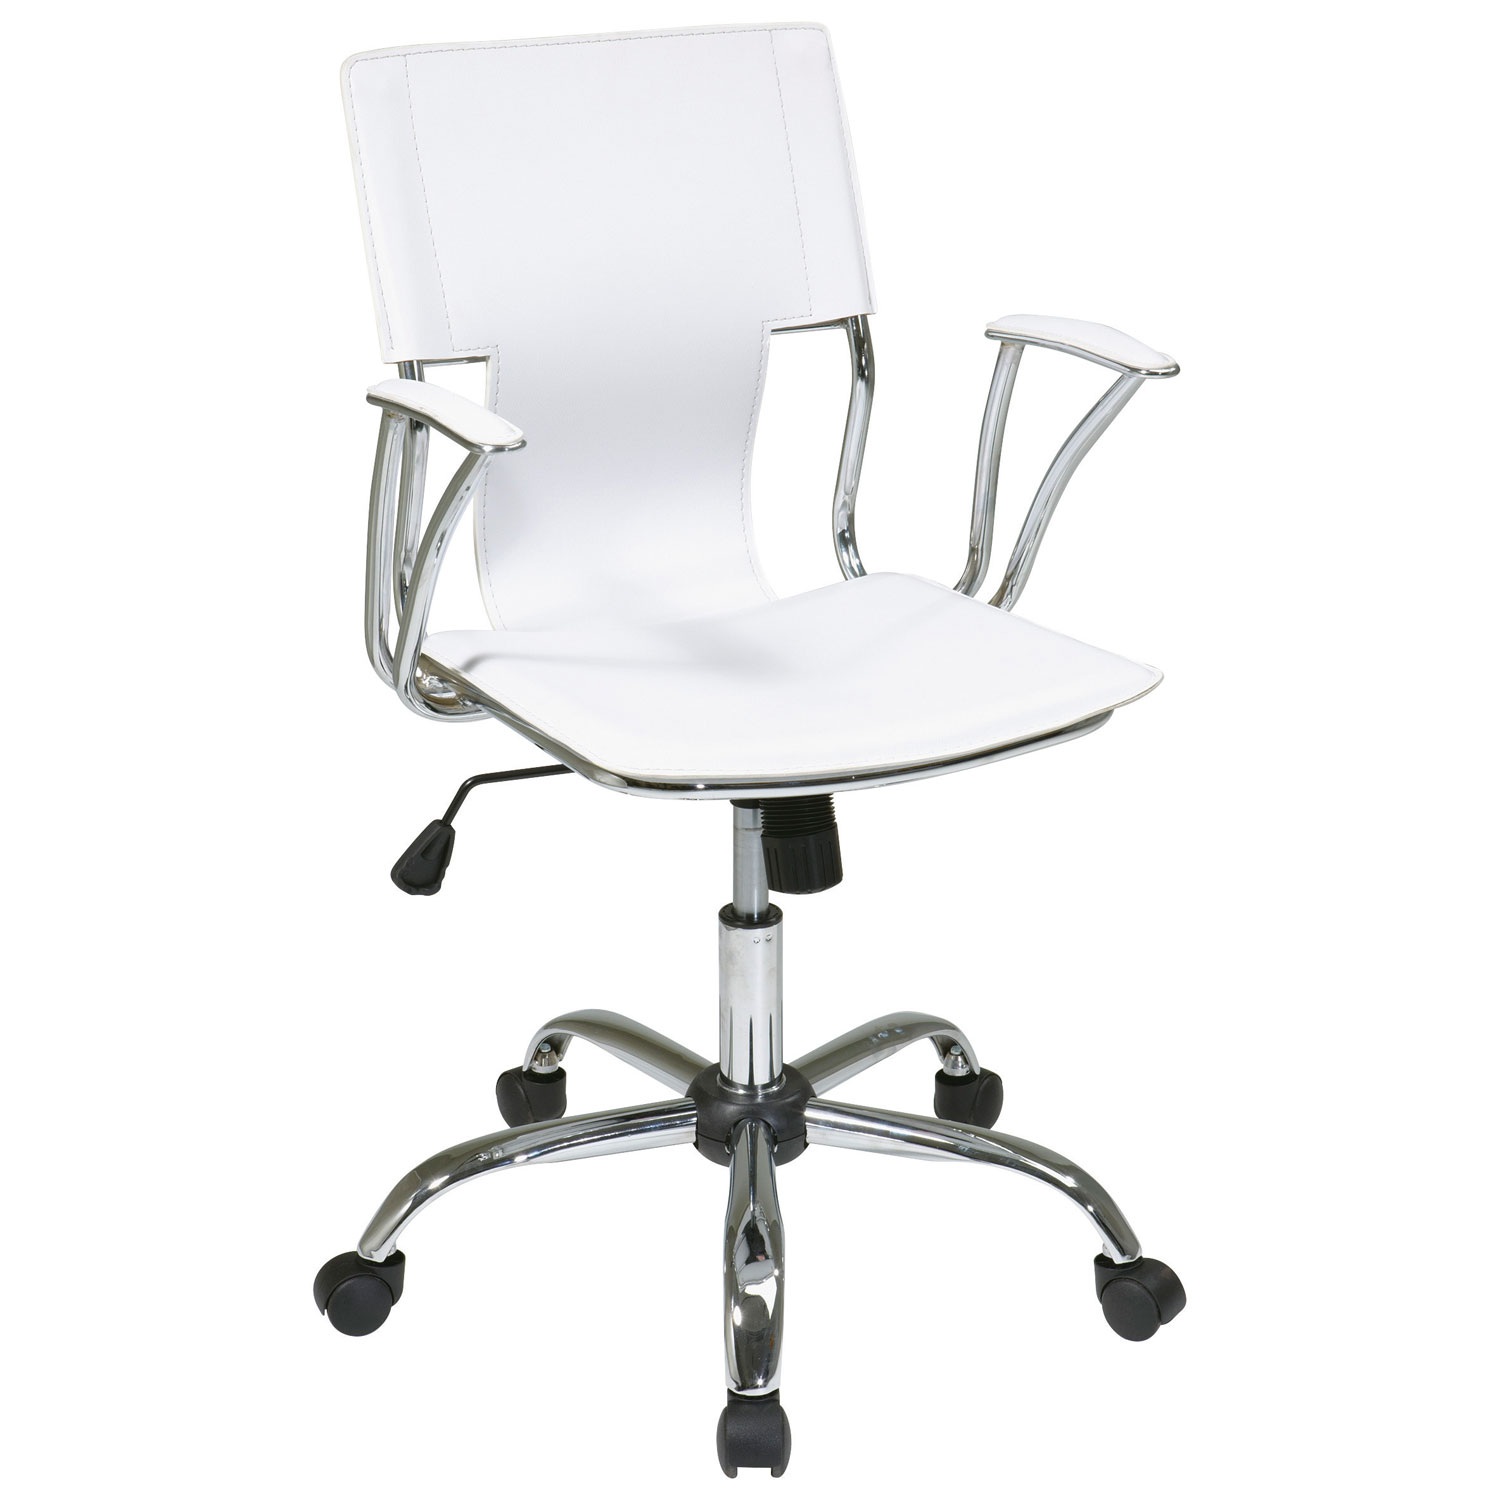 avenue six dorado vinyl office chair  white  office chairs  - avenue six dorado vinyl office chair  white  office chairs  best buycanada